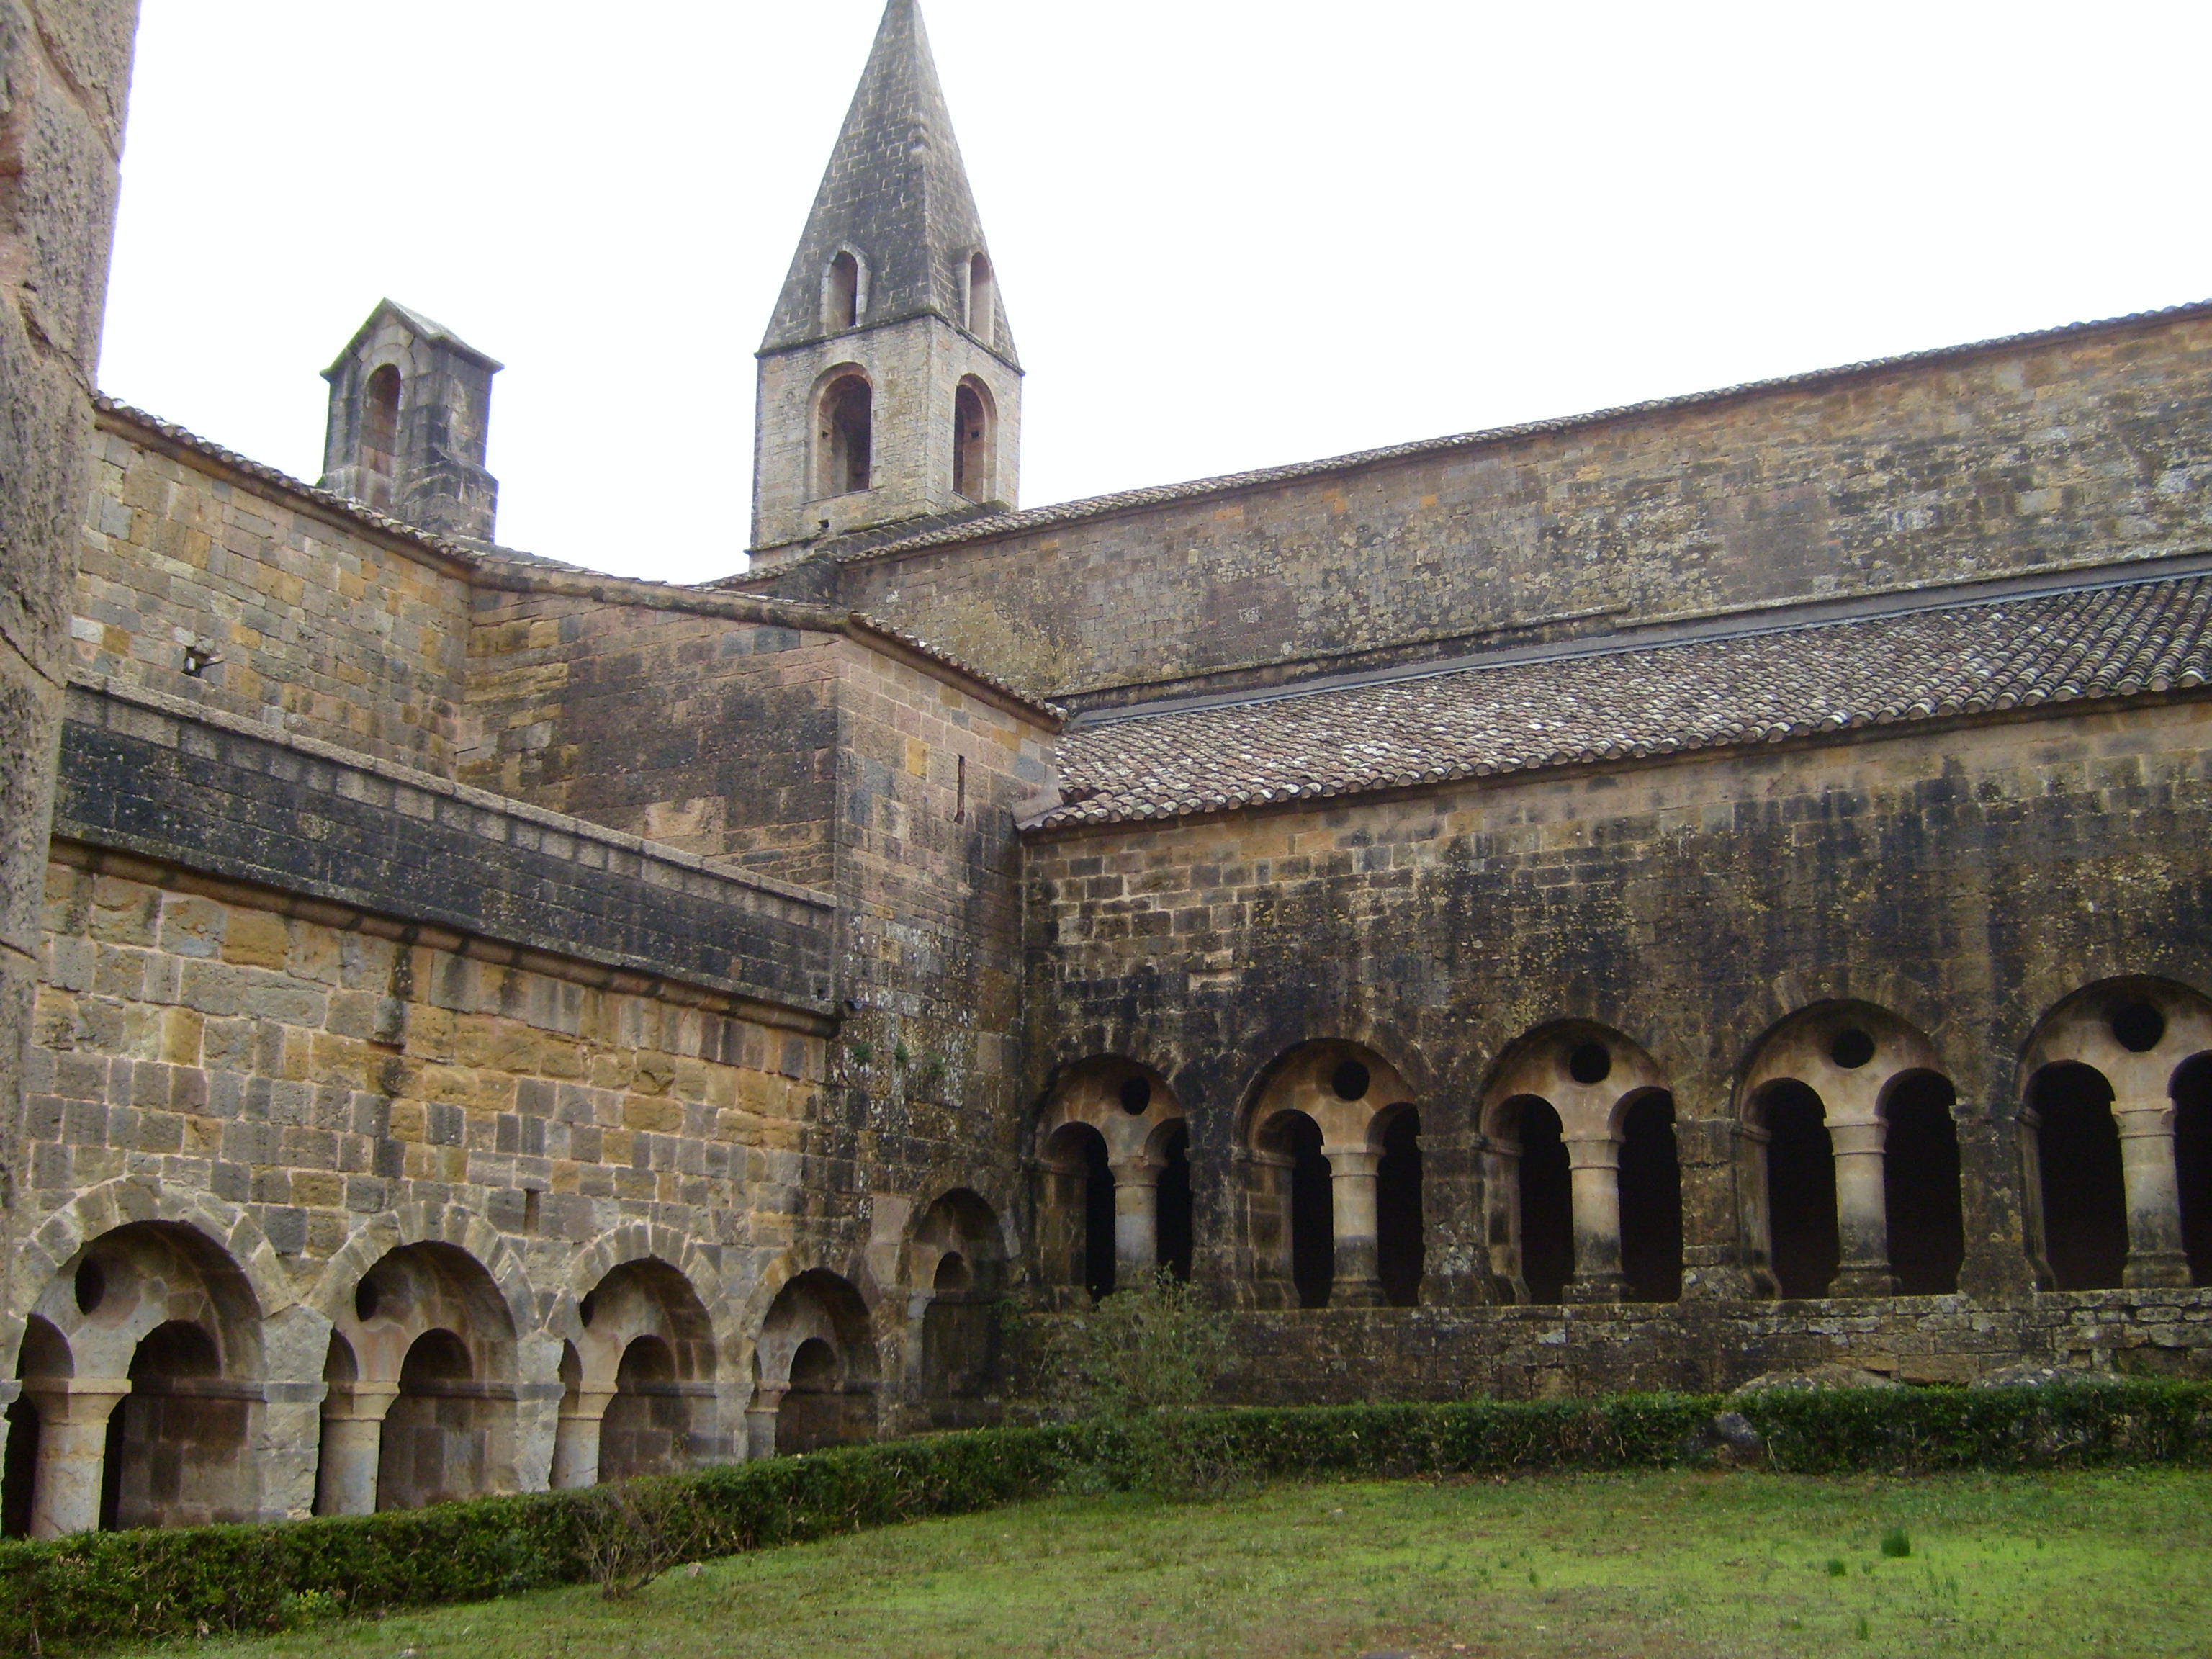 Le Thoronet France  city photos : Thoronet Cloister and Tower Wikimedia Commons